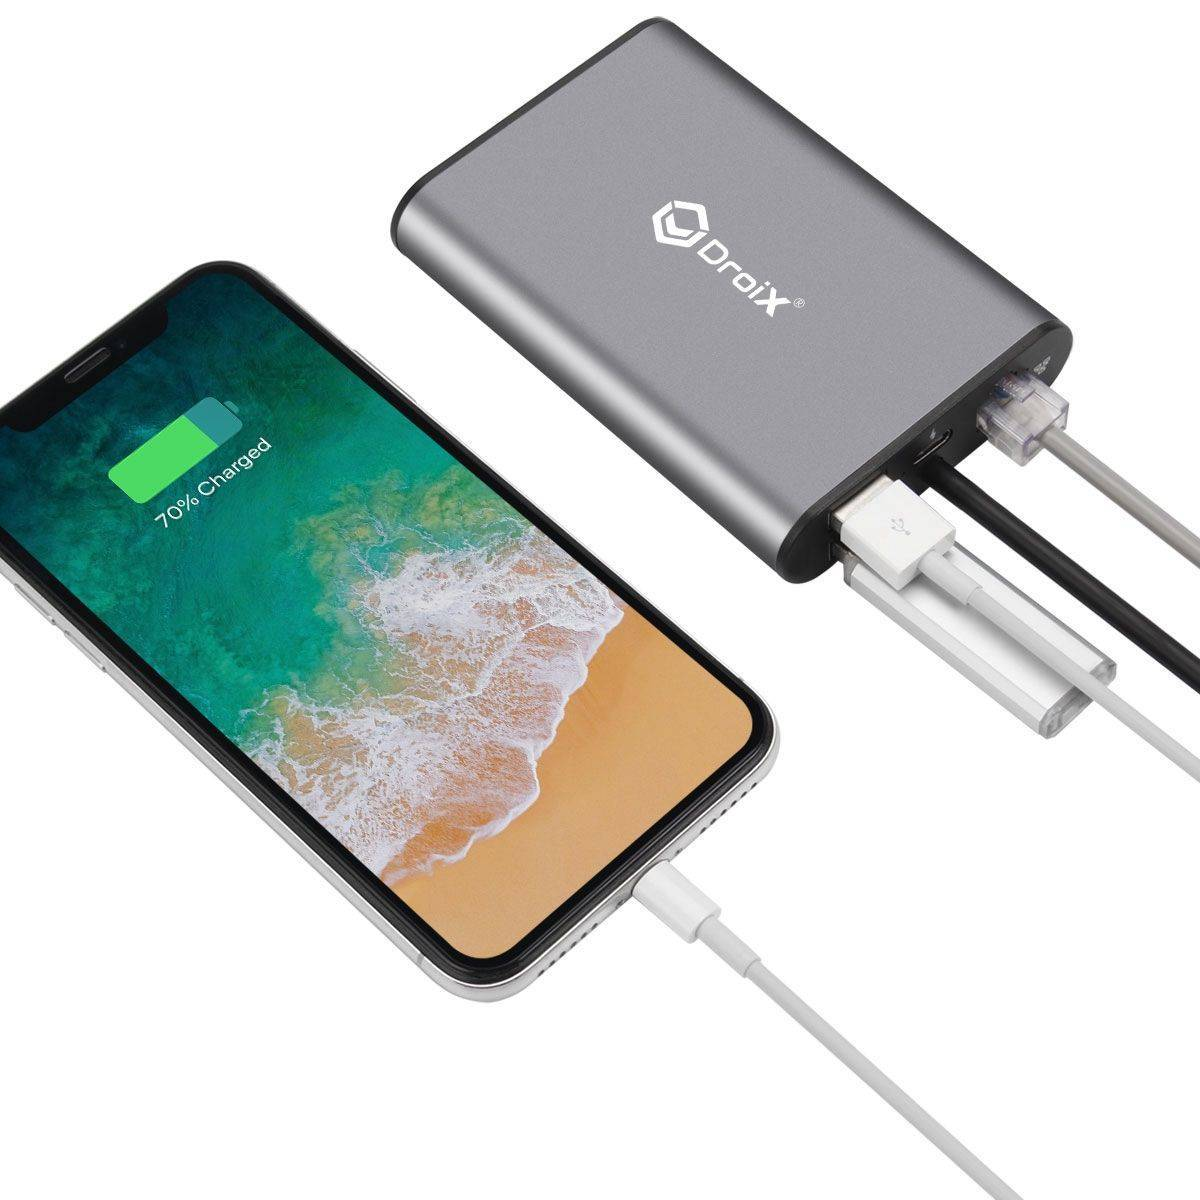 DroiX FX8 USB Type-C Hub Charging an iPhone XS